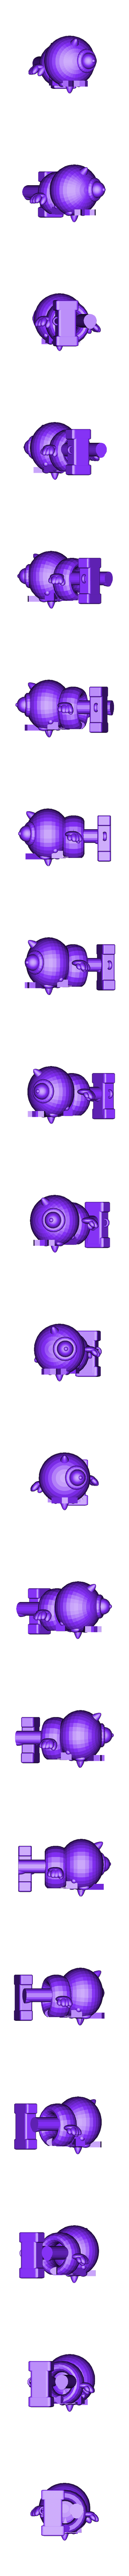 tinker.obj Download free OBJ file Mr.P Brawl Stars • 3D print template, paco_egabrum